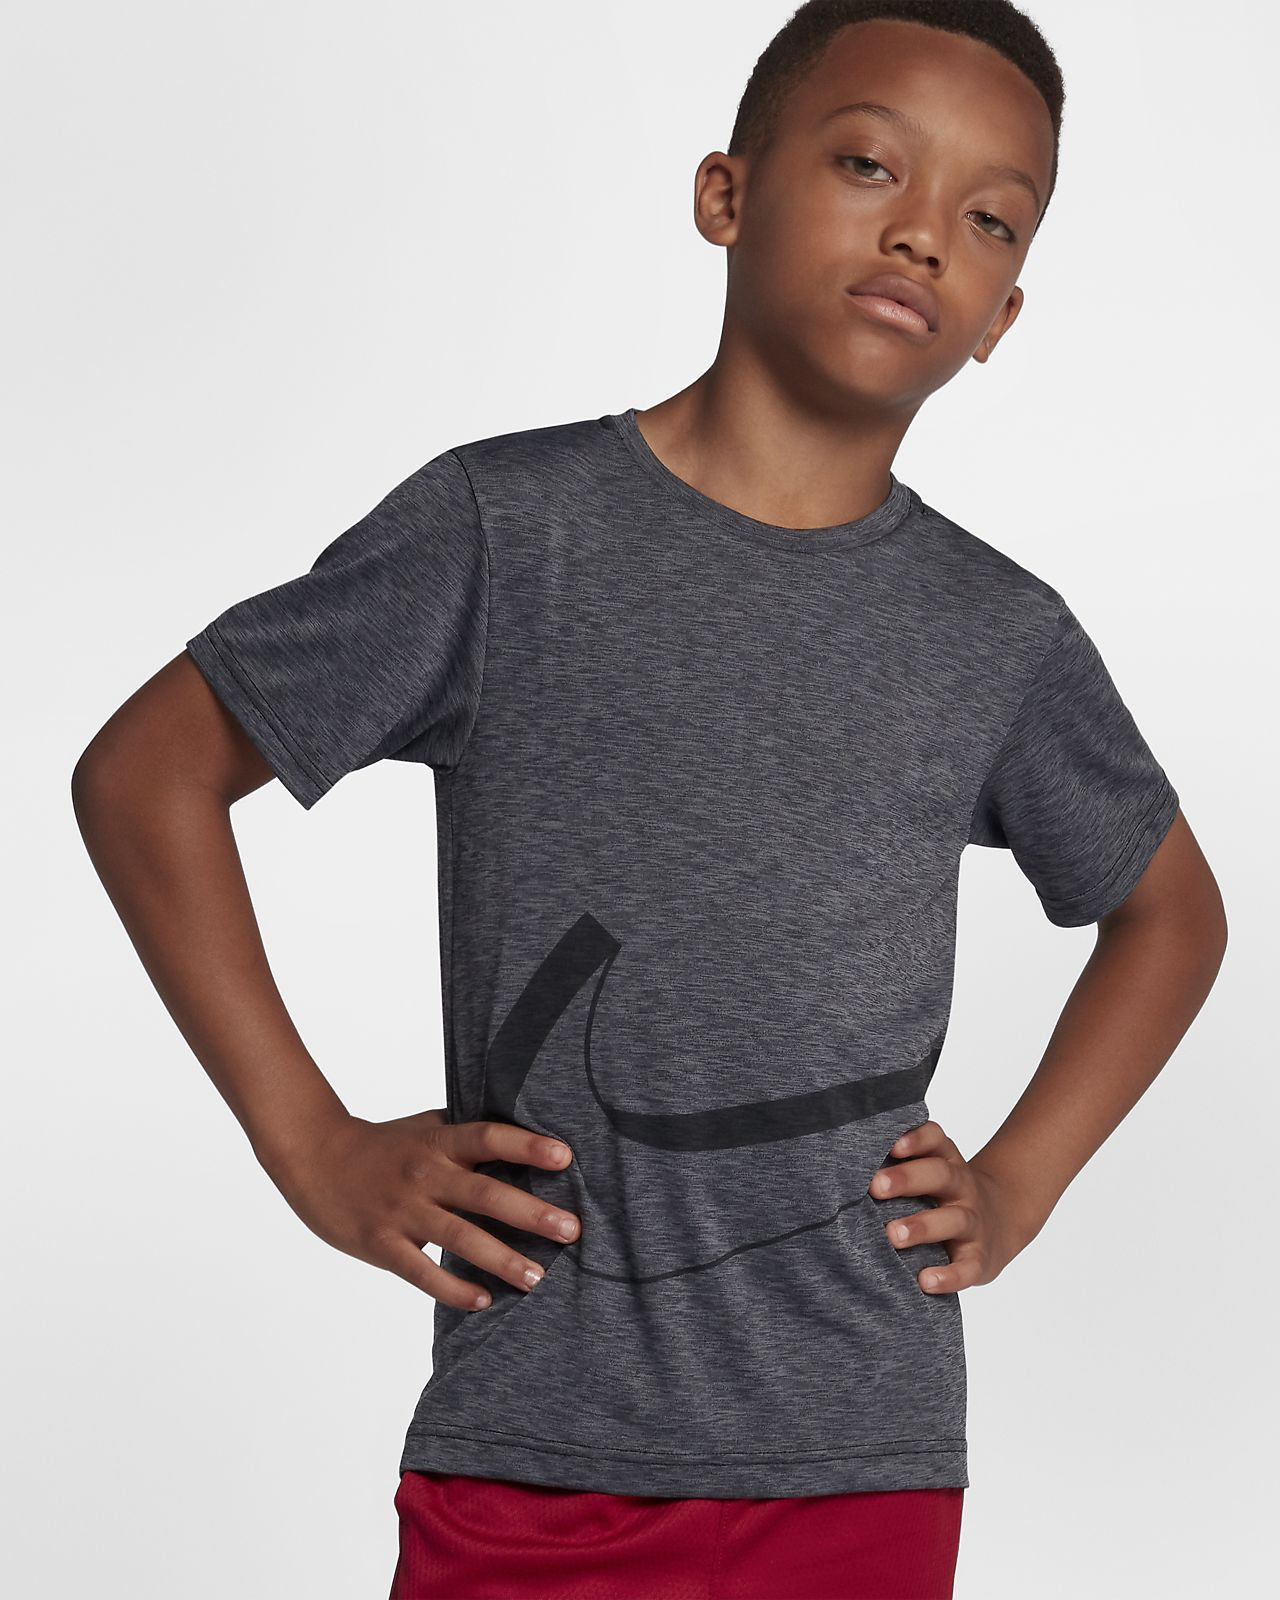 Nike Dri-FIT Breathe Older Kids' (Boys') Short-Sleeve Training Top